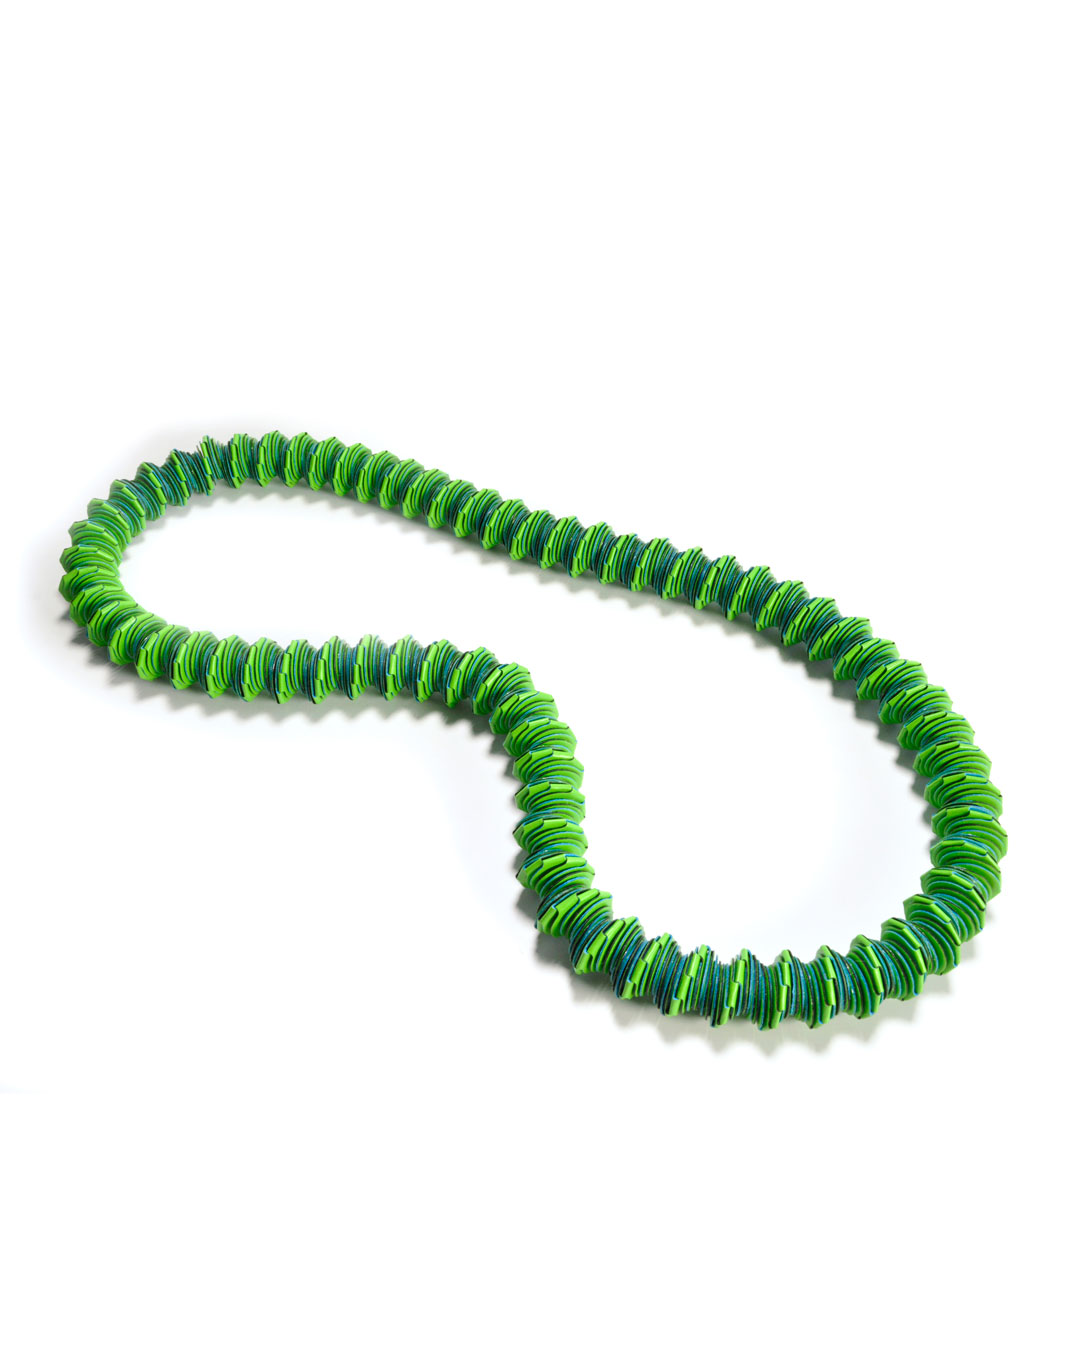 Nel Linssen, untitled, 1999, necklace; plastic-coated paper, 350 x 150 x 20 mm, €950